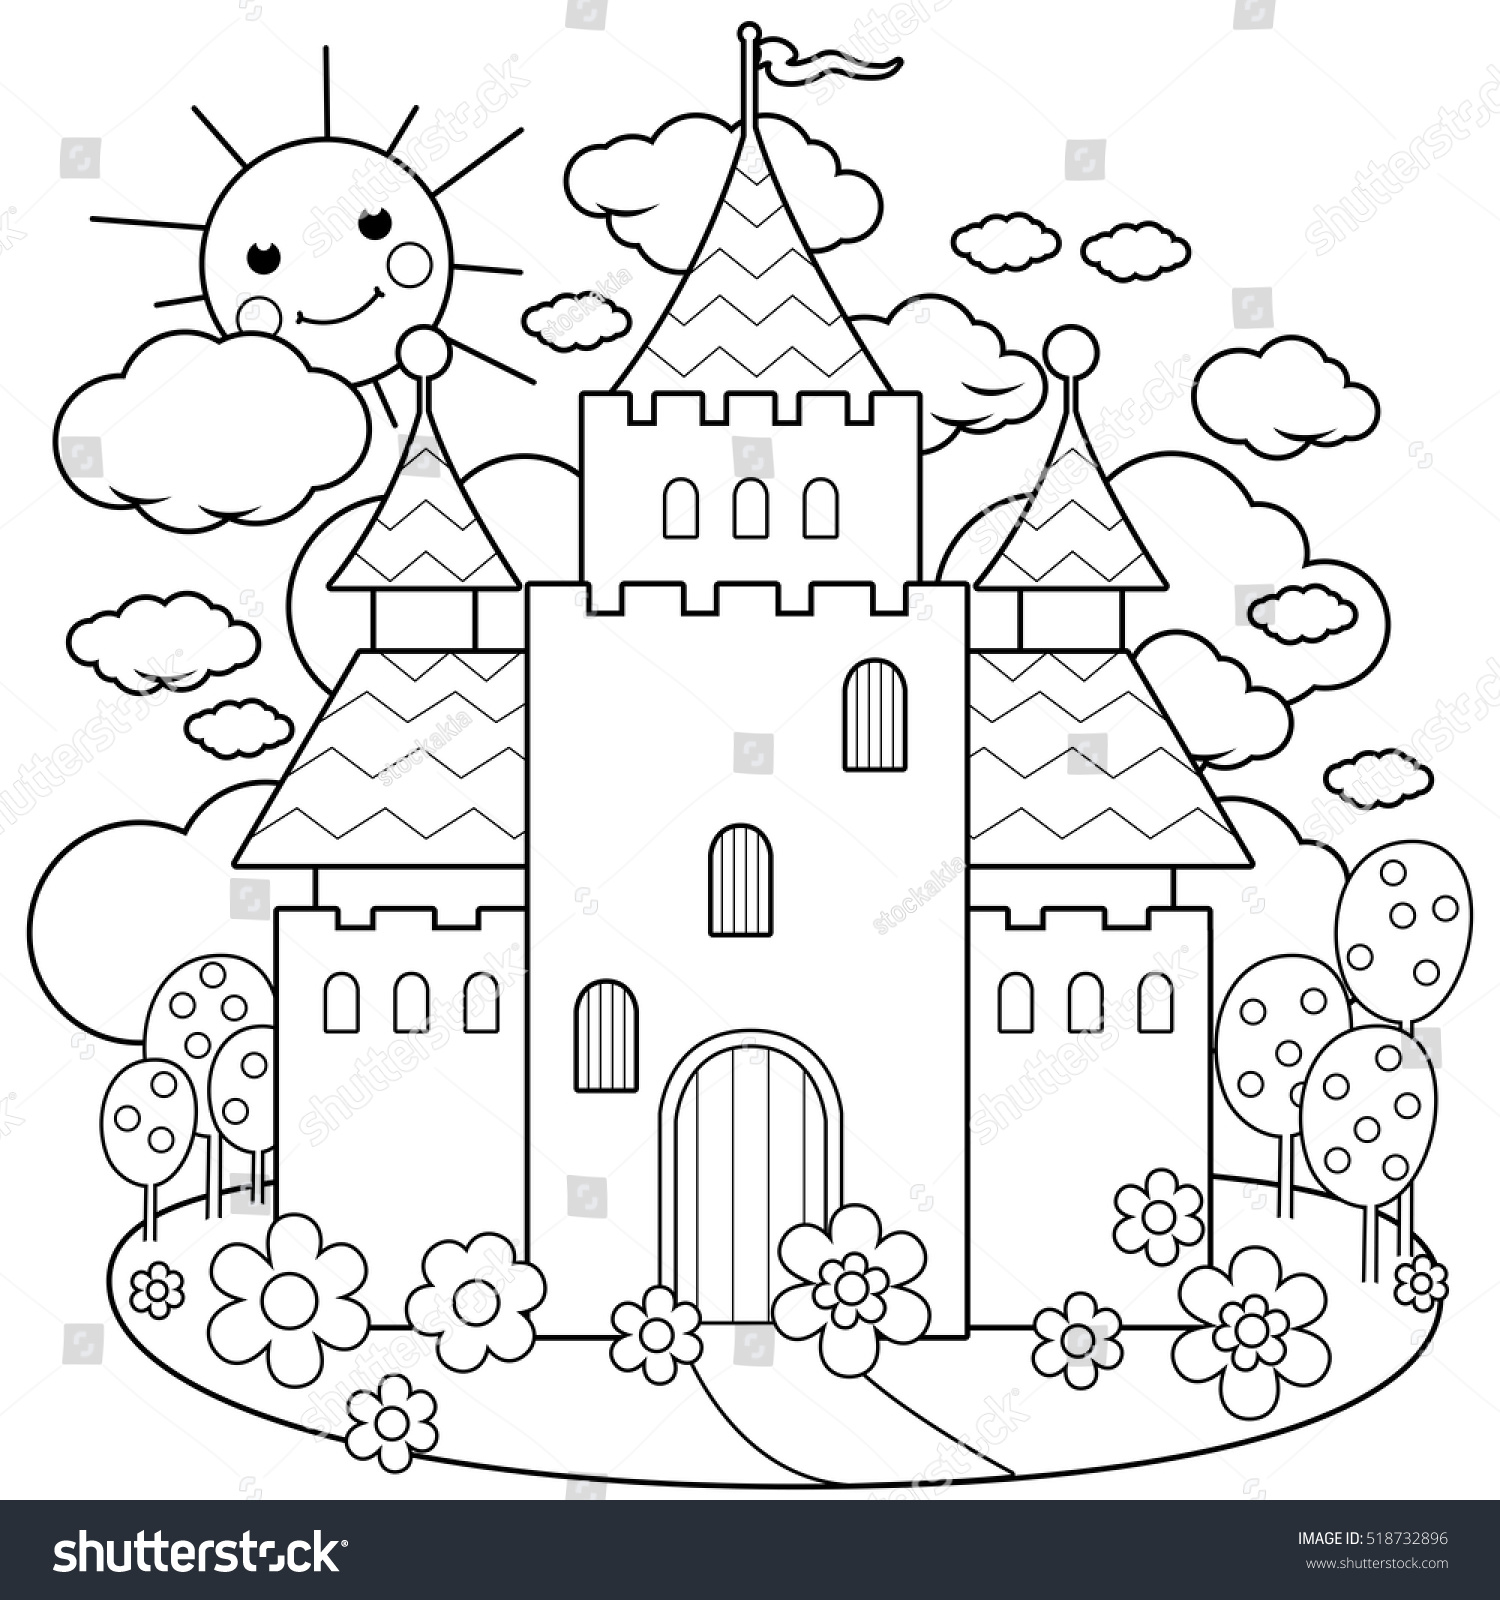 fairy tale castle and flowers coloring page - Coloring Pages Fairies Flowers